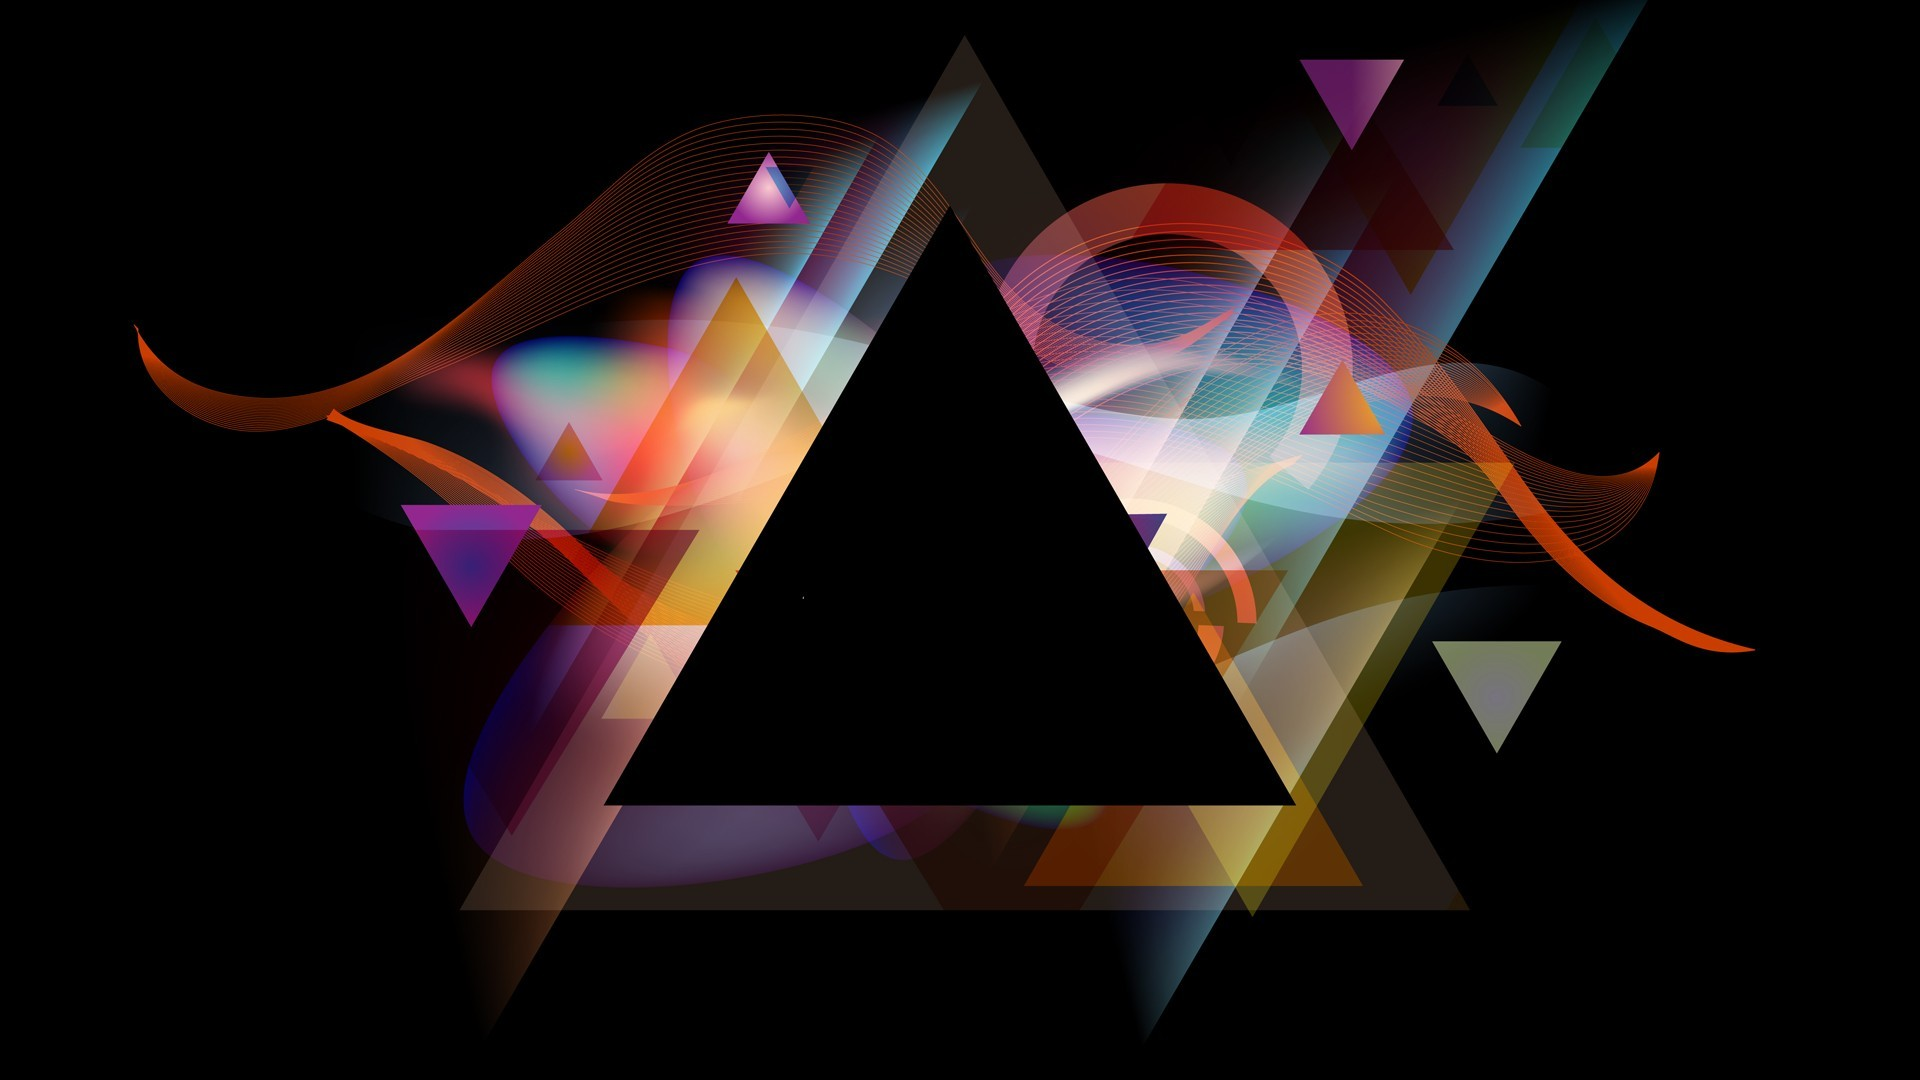 1920x1080 Outstanding Hd Illuminati Wallpapers for Ipad px